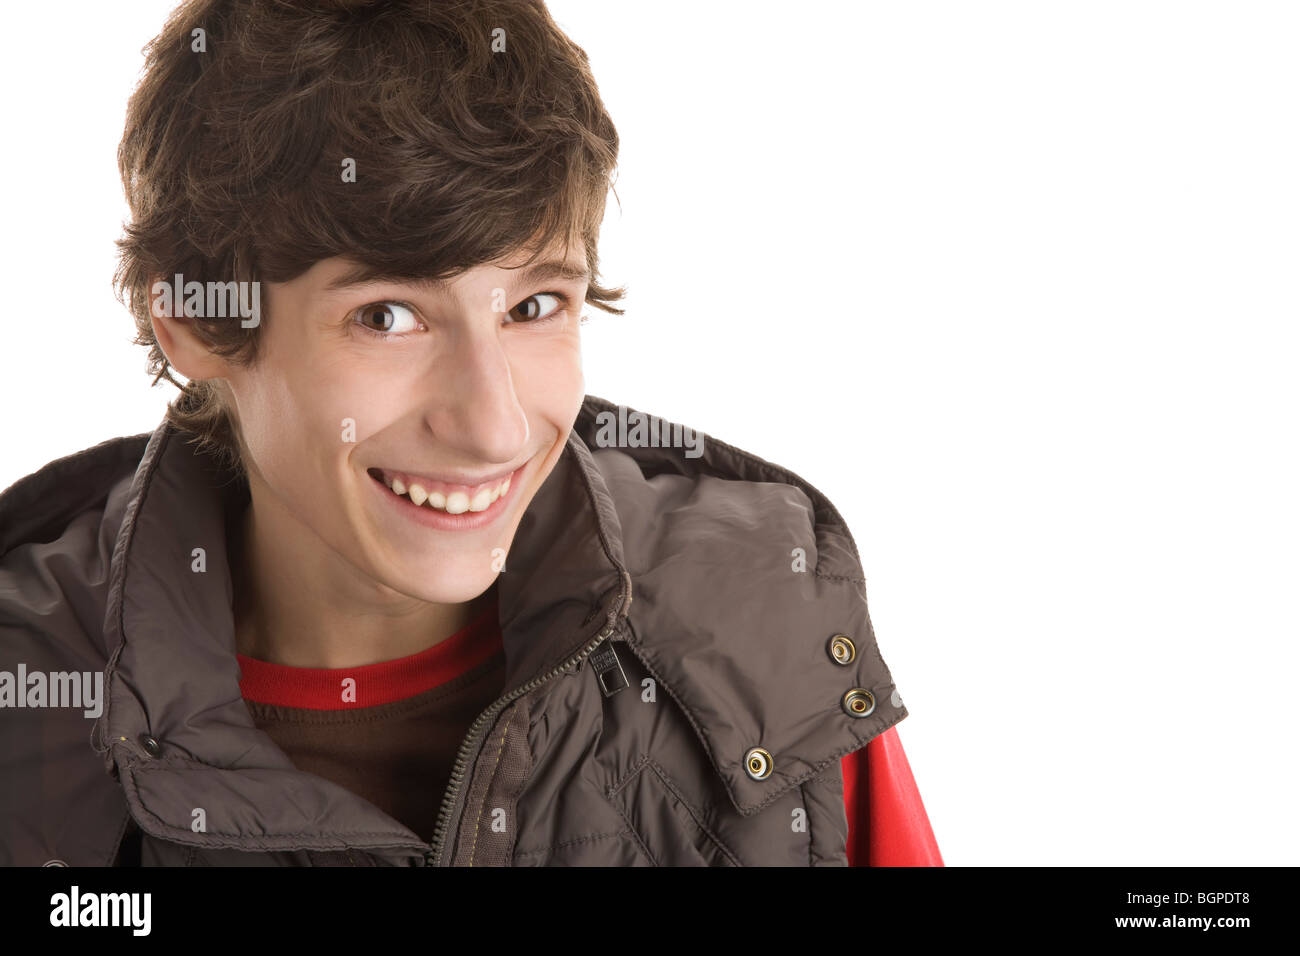 Portrait of young man laughing isolated on white background - Stock Image